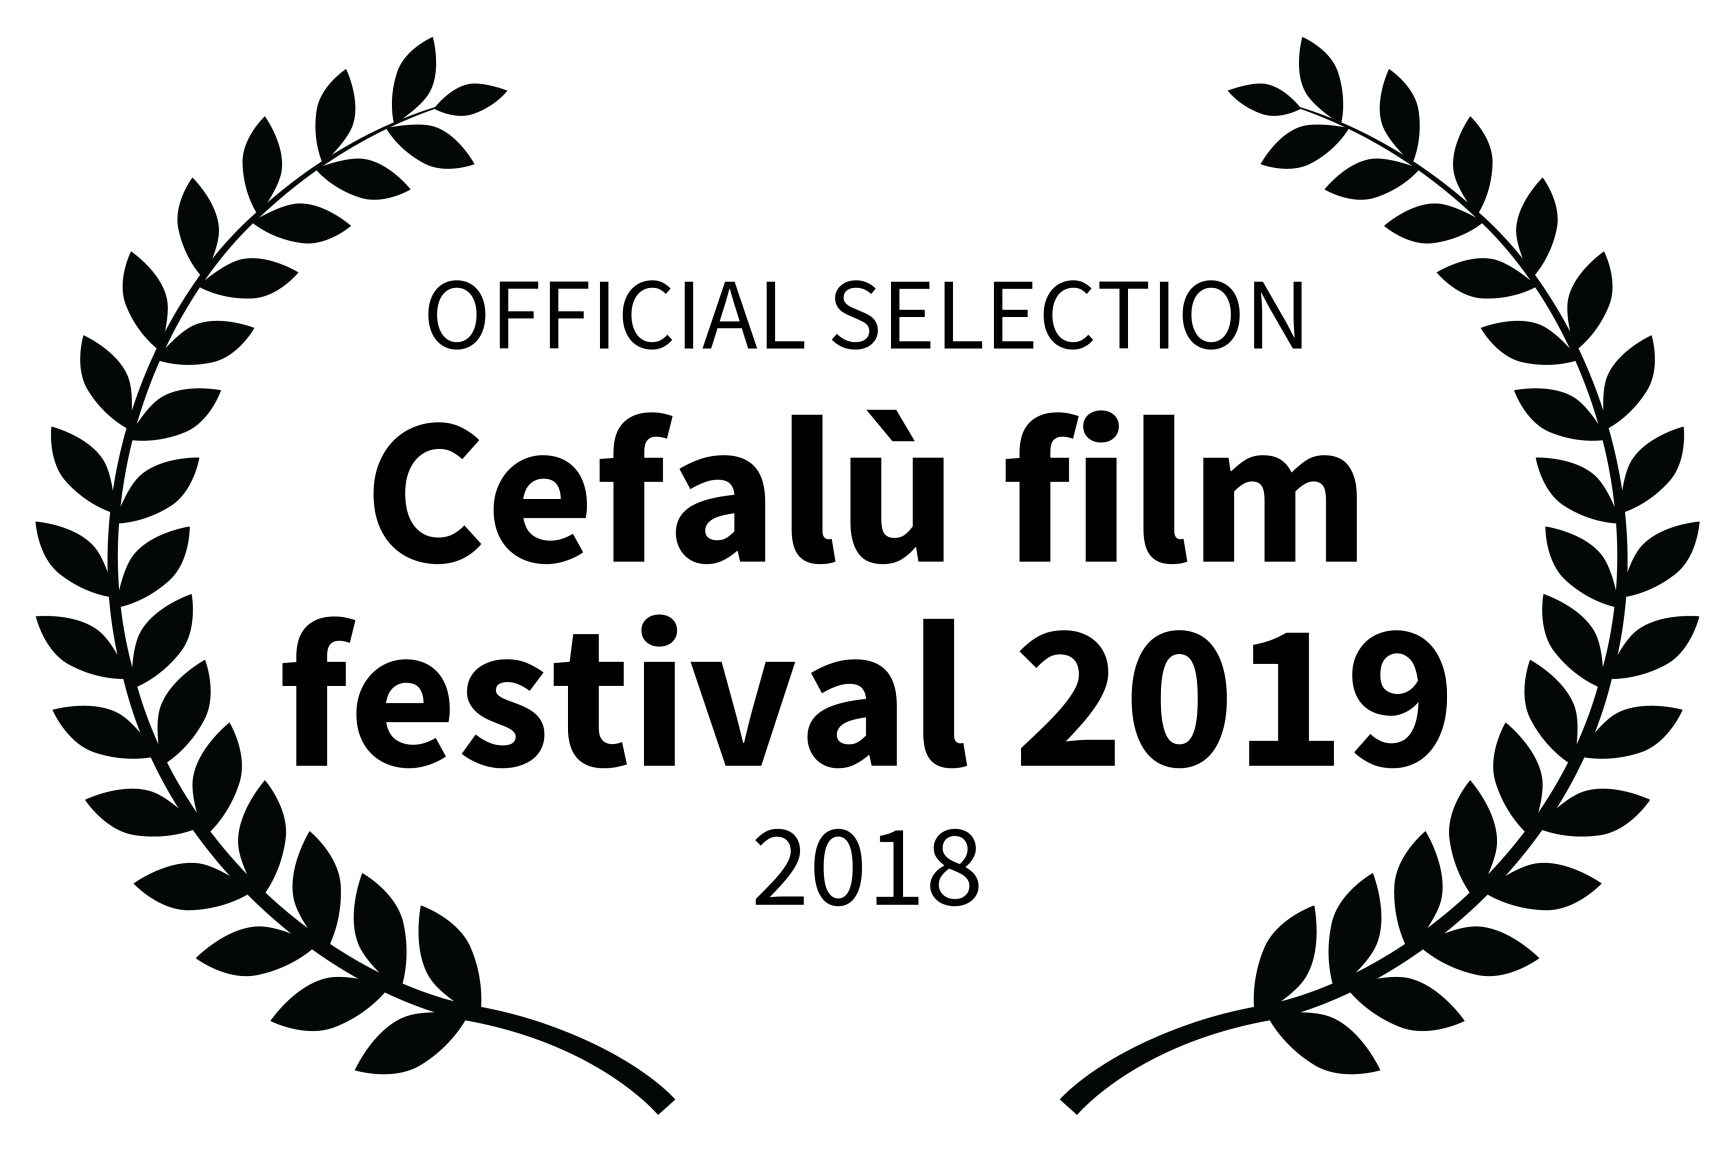 OFFICIAL SELECTION - Cefal film festival 2019 - 2018